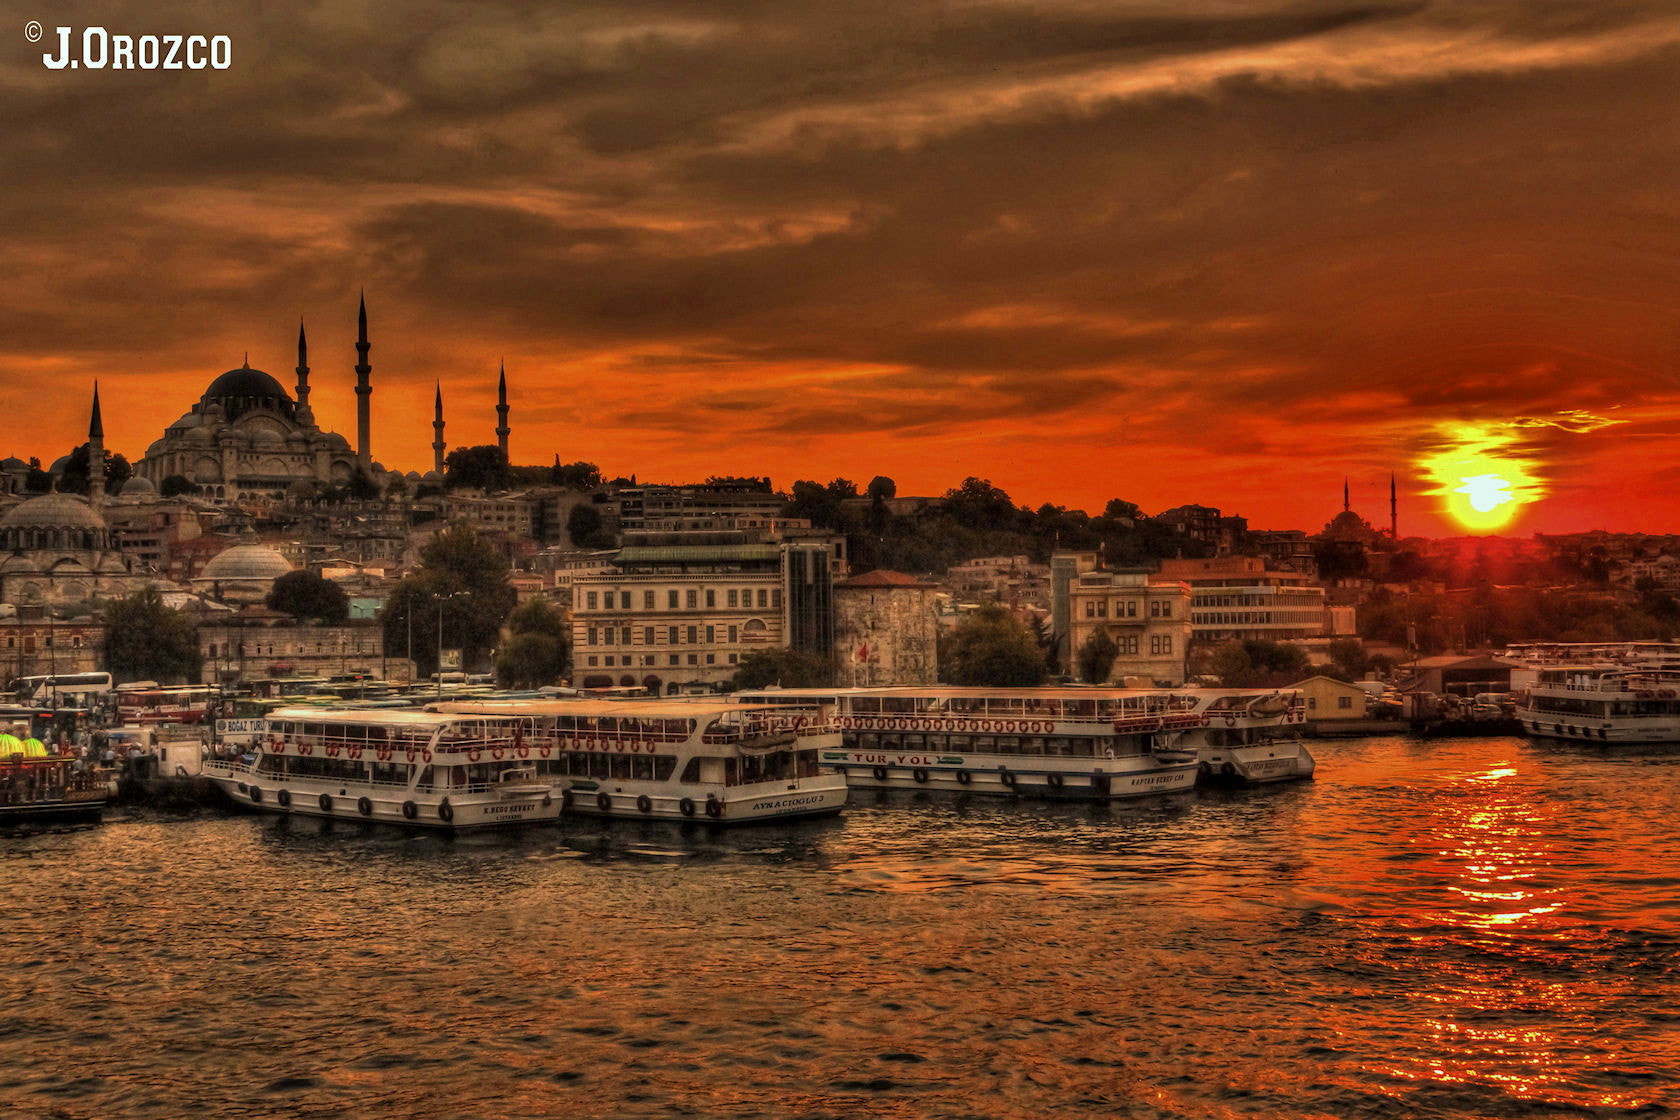 Photograph Atardecer en Estambul. by jose orozco on 500px